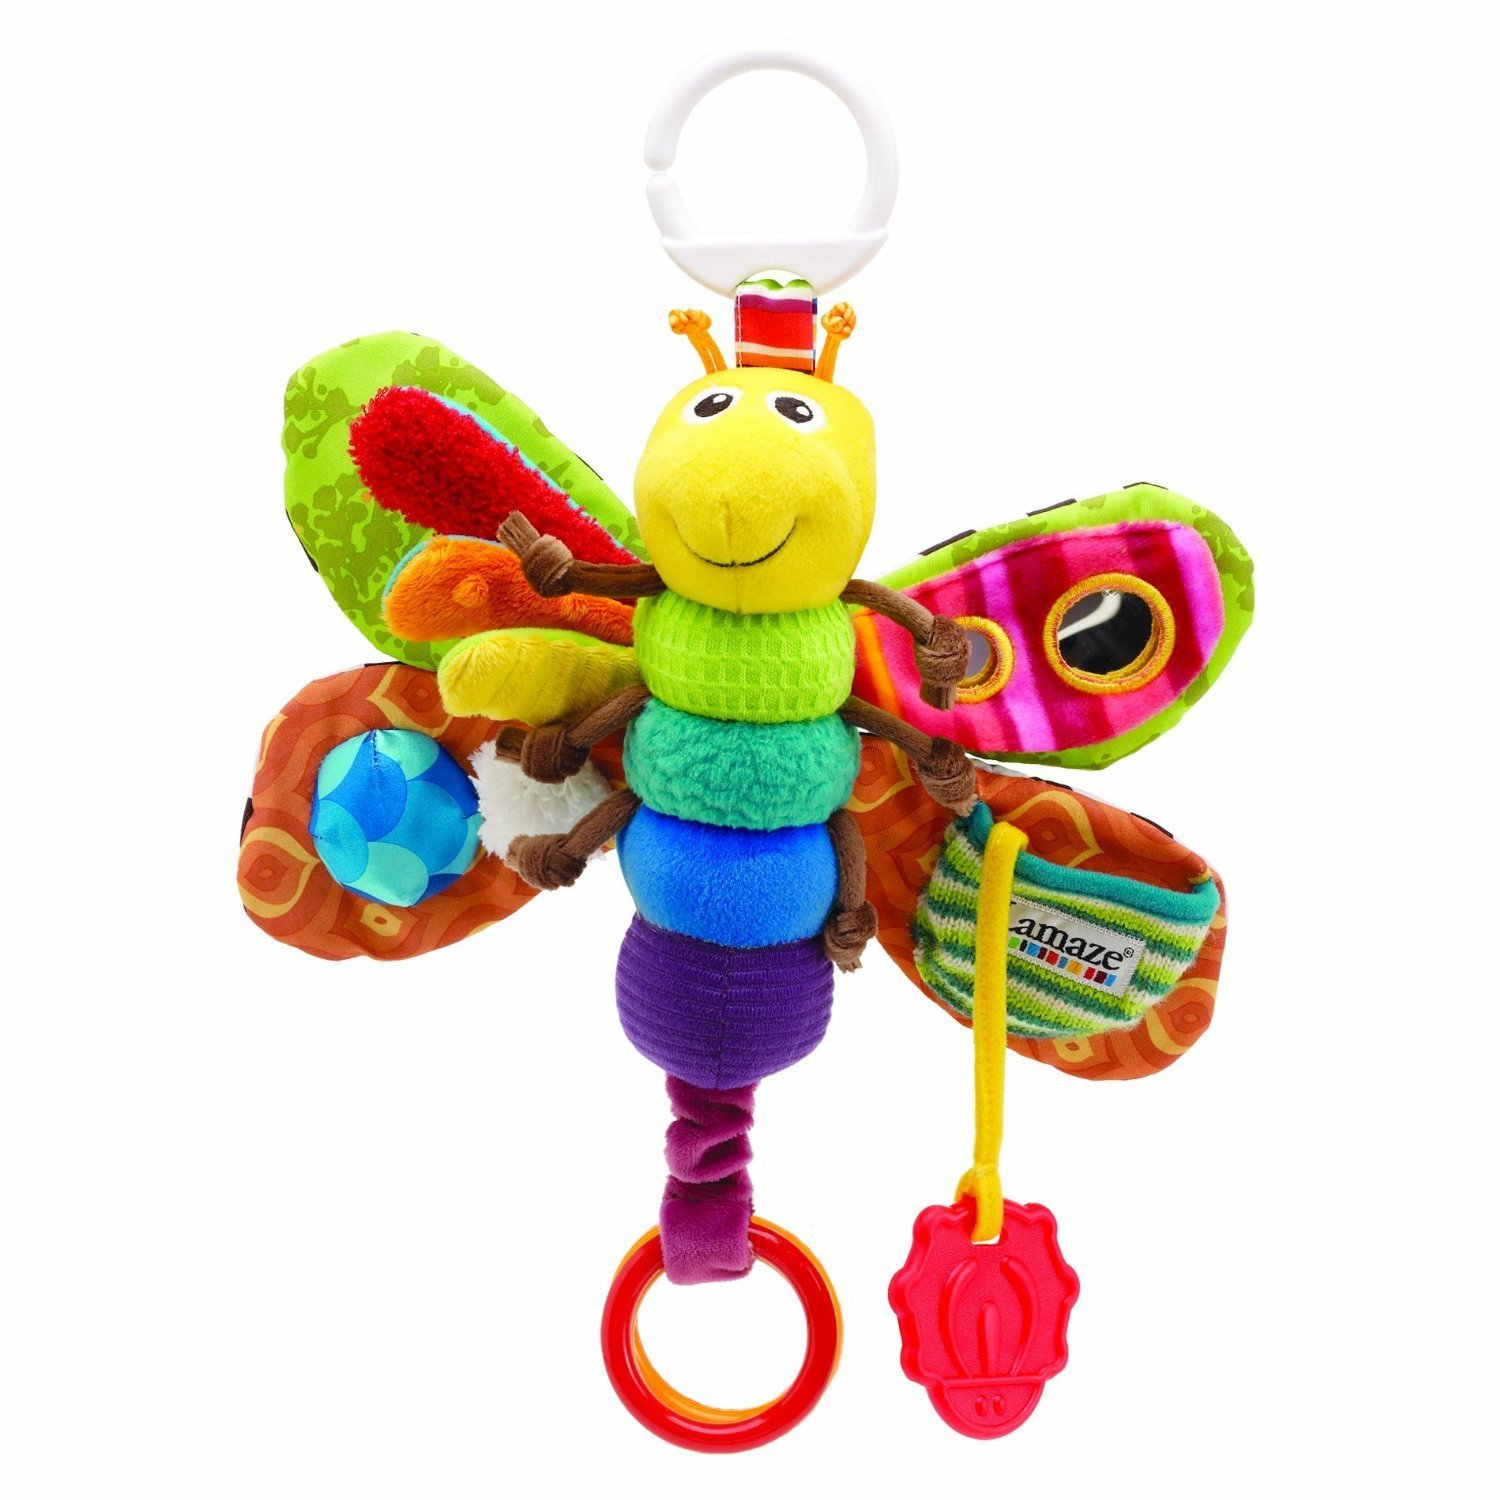 Wholesale Lamaze Wholesale Lamaze Suppliers and Manufacturers à